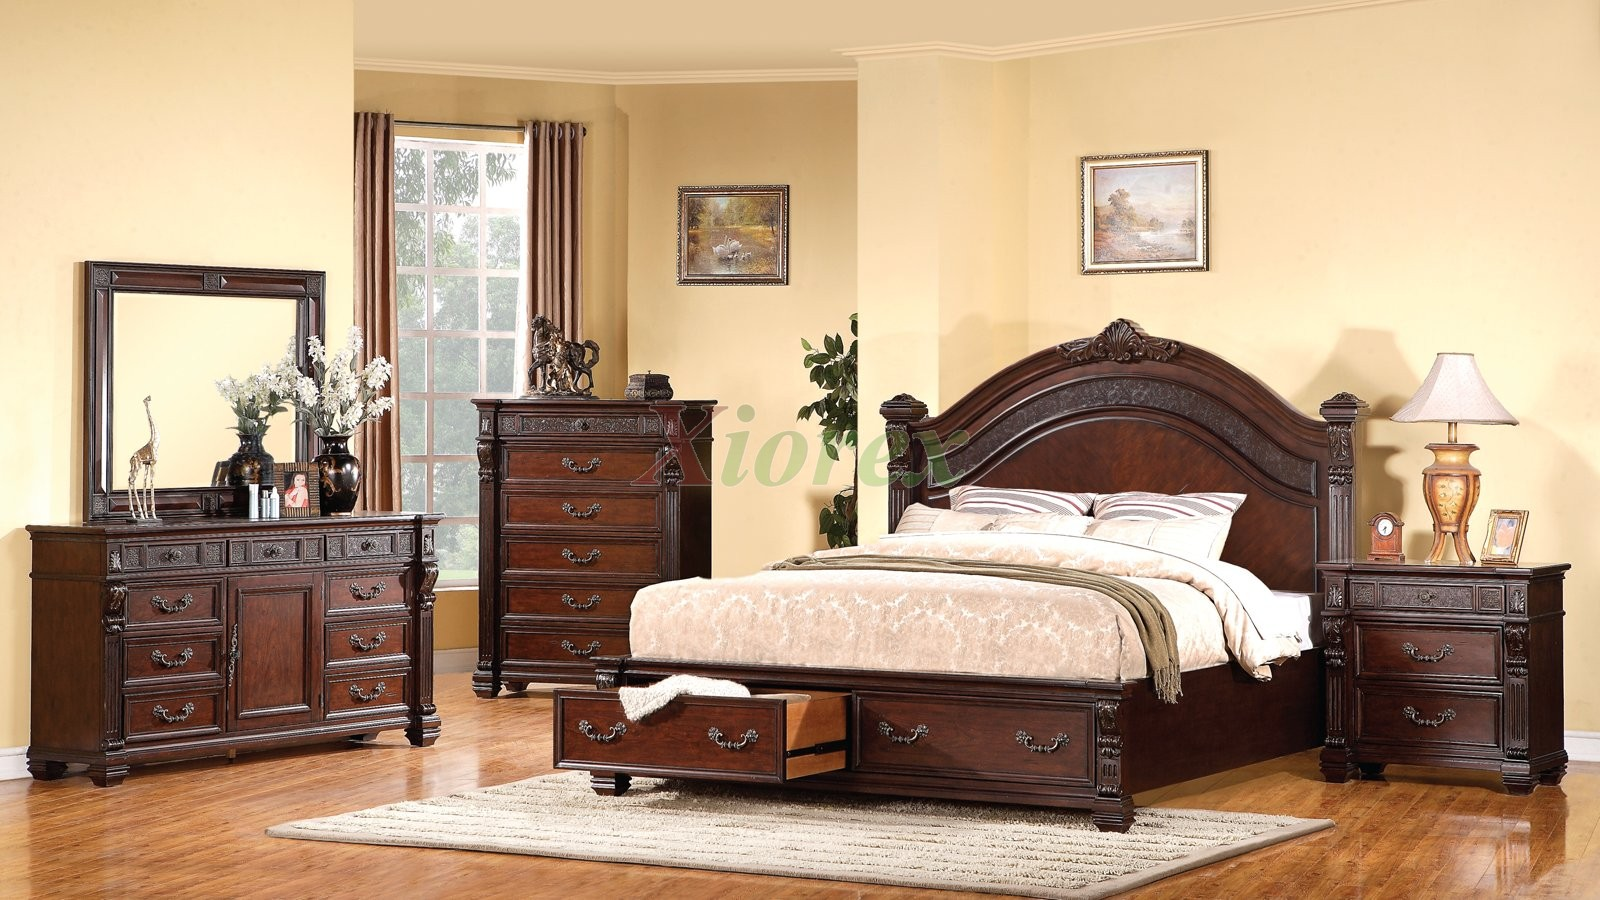 Amazing Bedroom Furniture Sets with Storage 1600 x 900 · 333 kB · jpeg